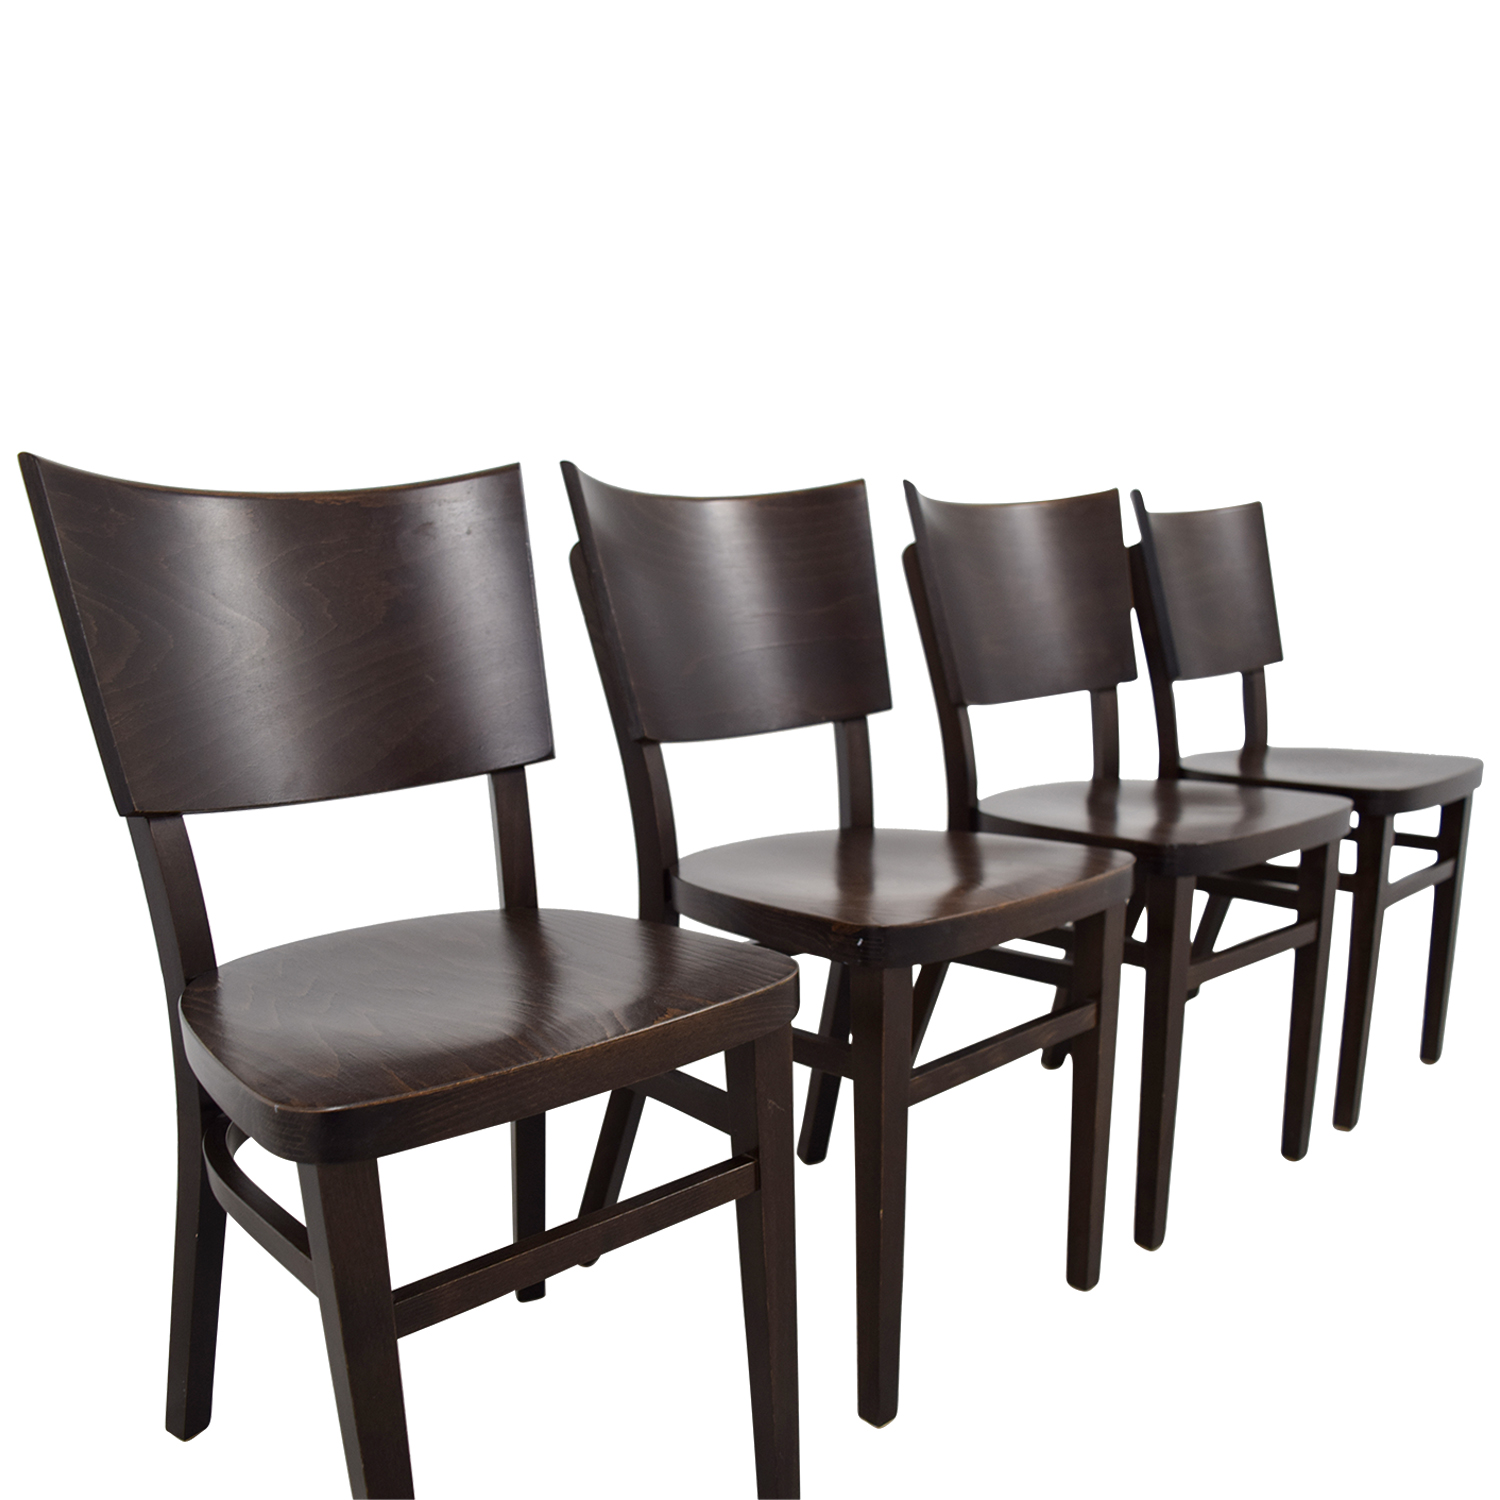 44% OFF - Design Within Reach Design Within Reach Kyoto Brown Chairs ...